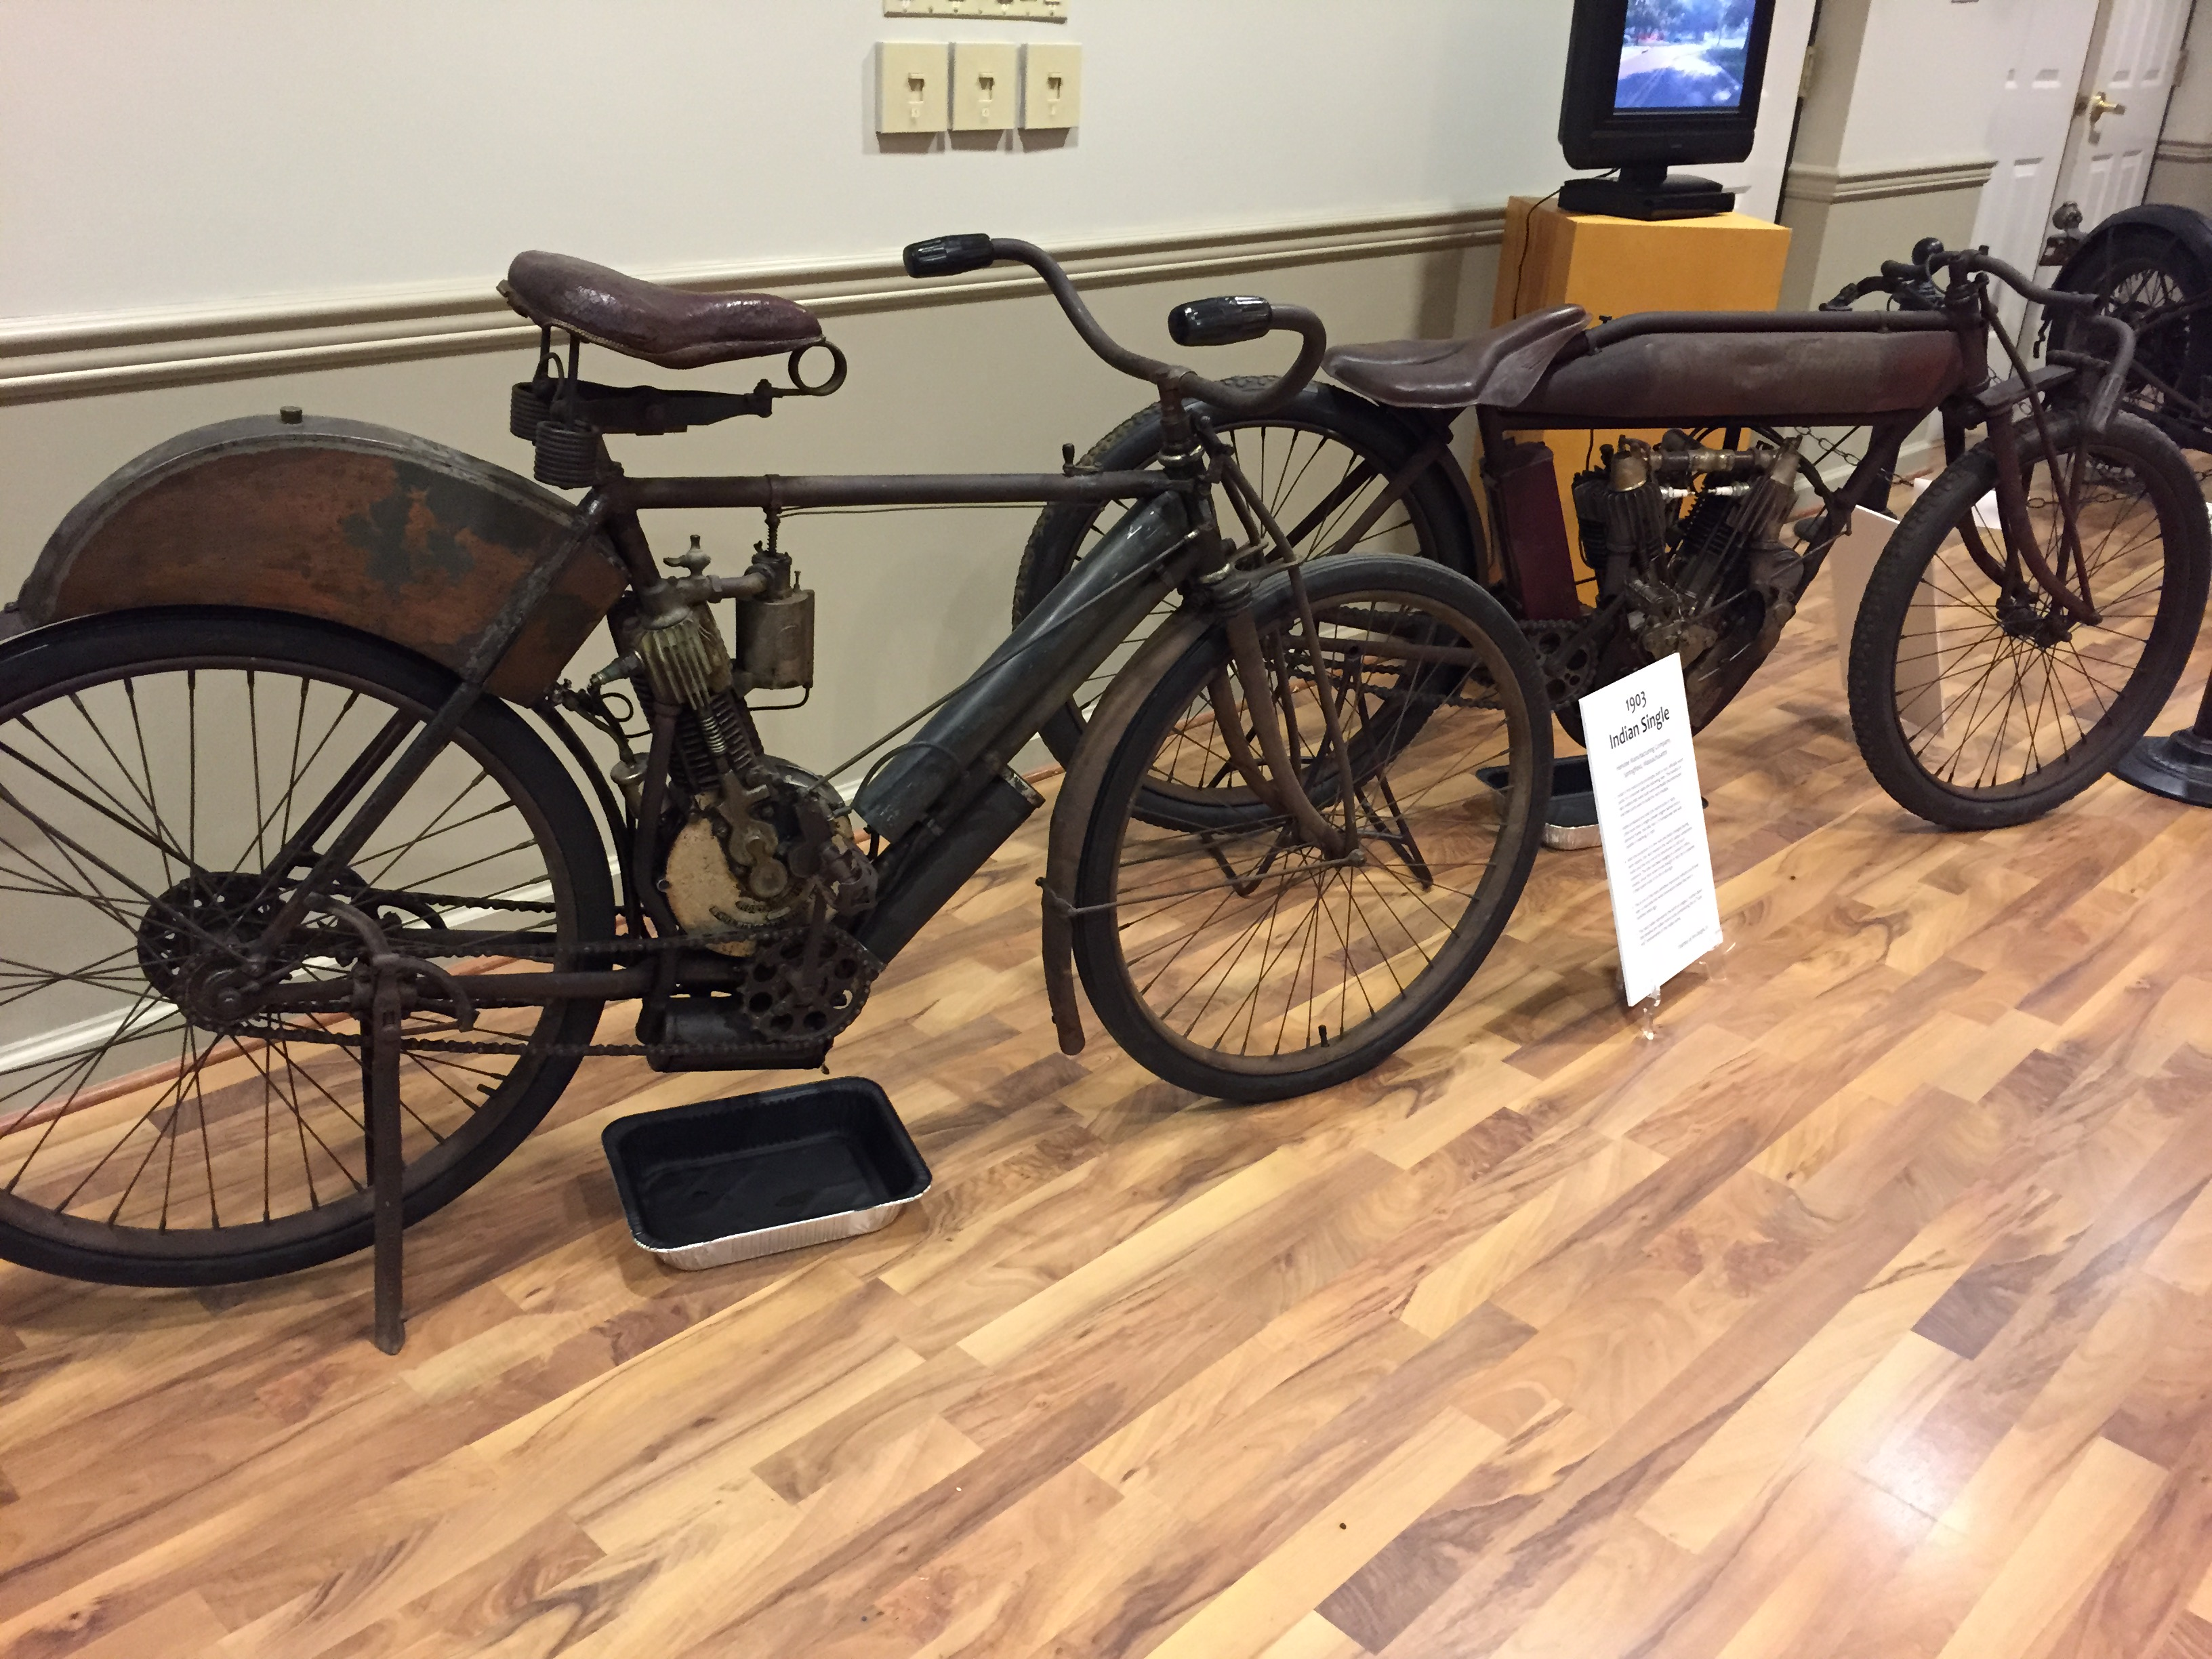 An unrestored 1903 Indian and a 1912 Indian TT Racer are two of the oldest bikes on display